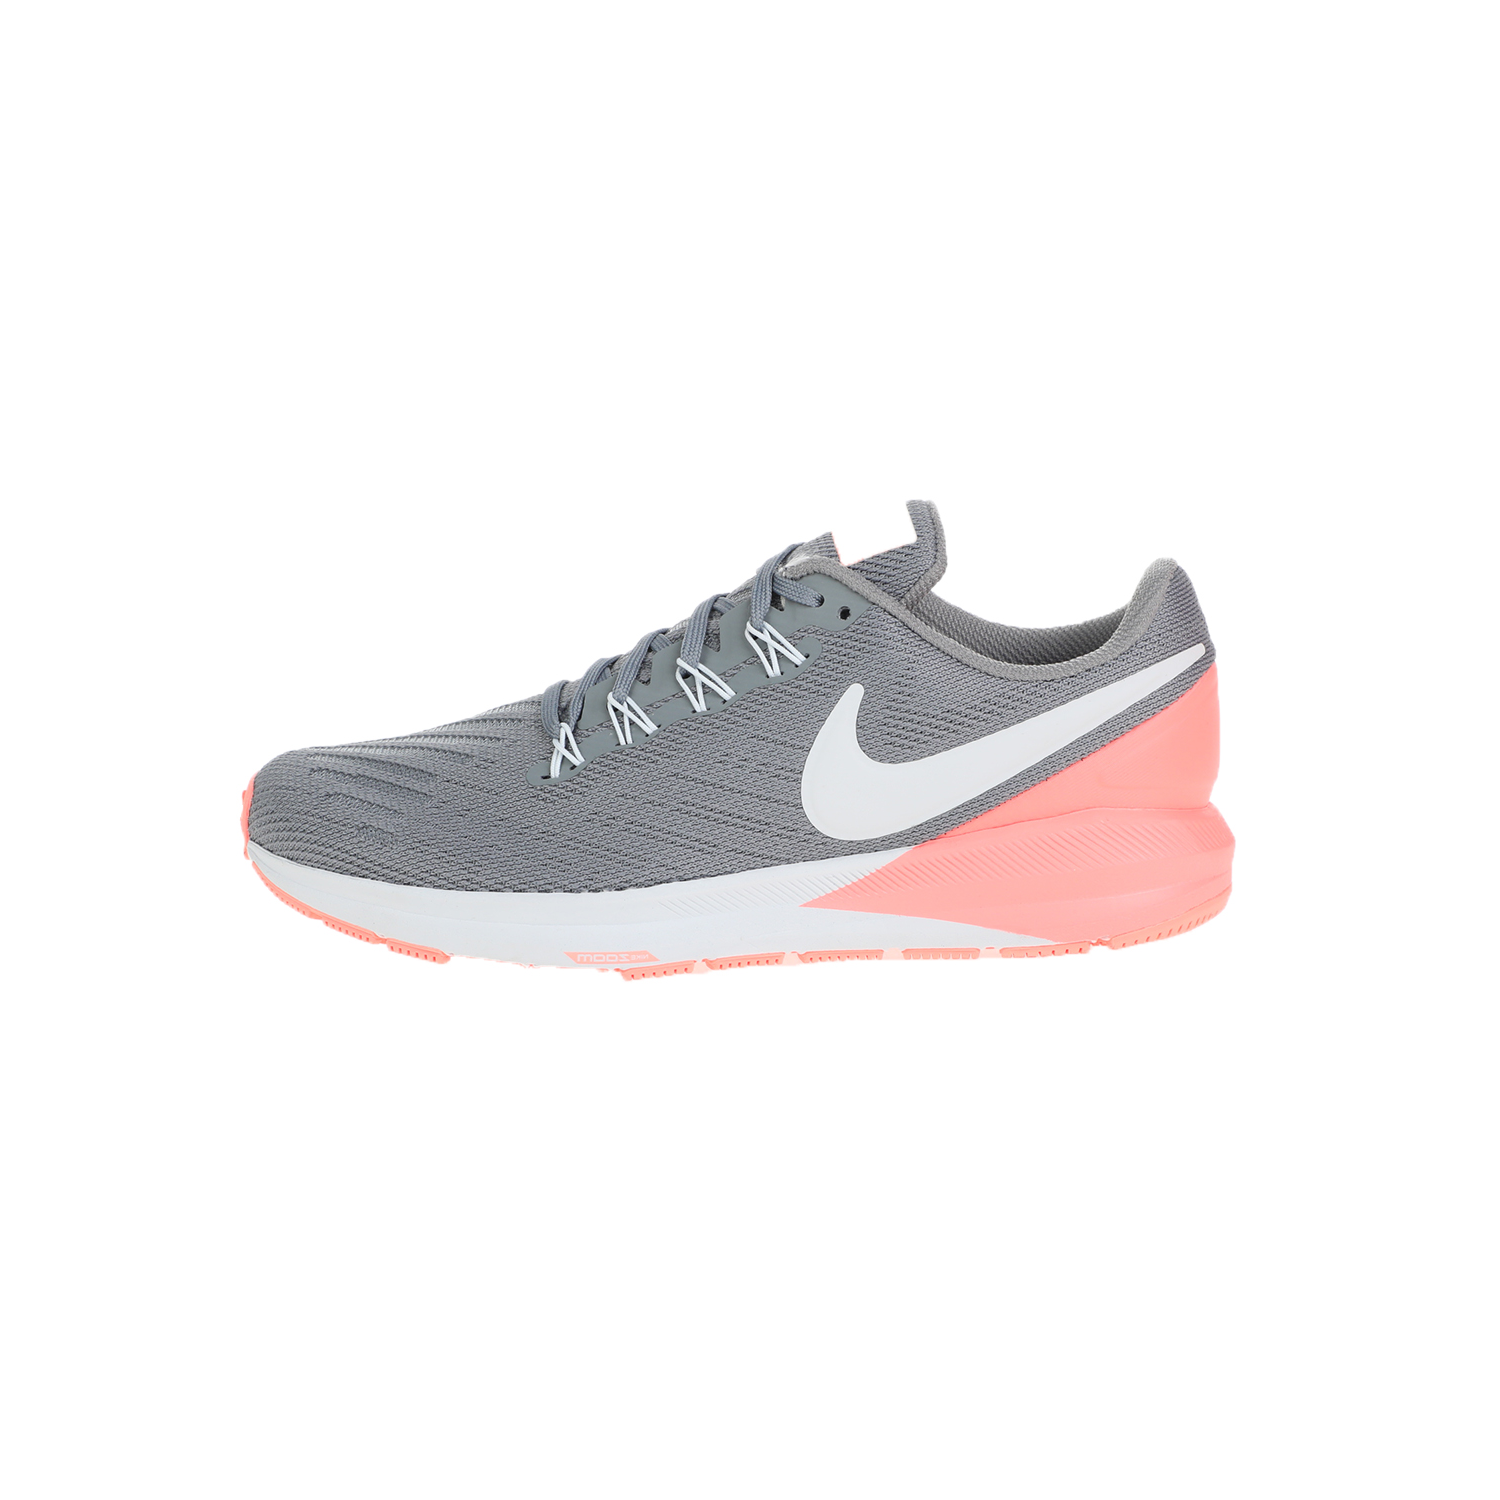 NIKE – Γυναικεία running παπούτσια NIKE AIR ZOOM STRUCTURE 22 γκρι